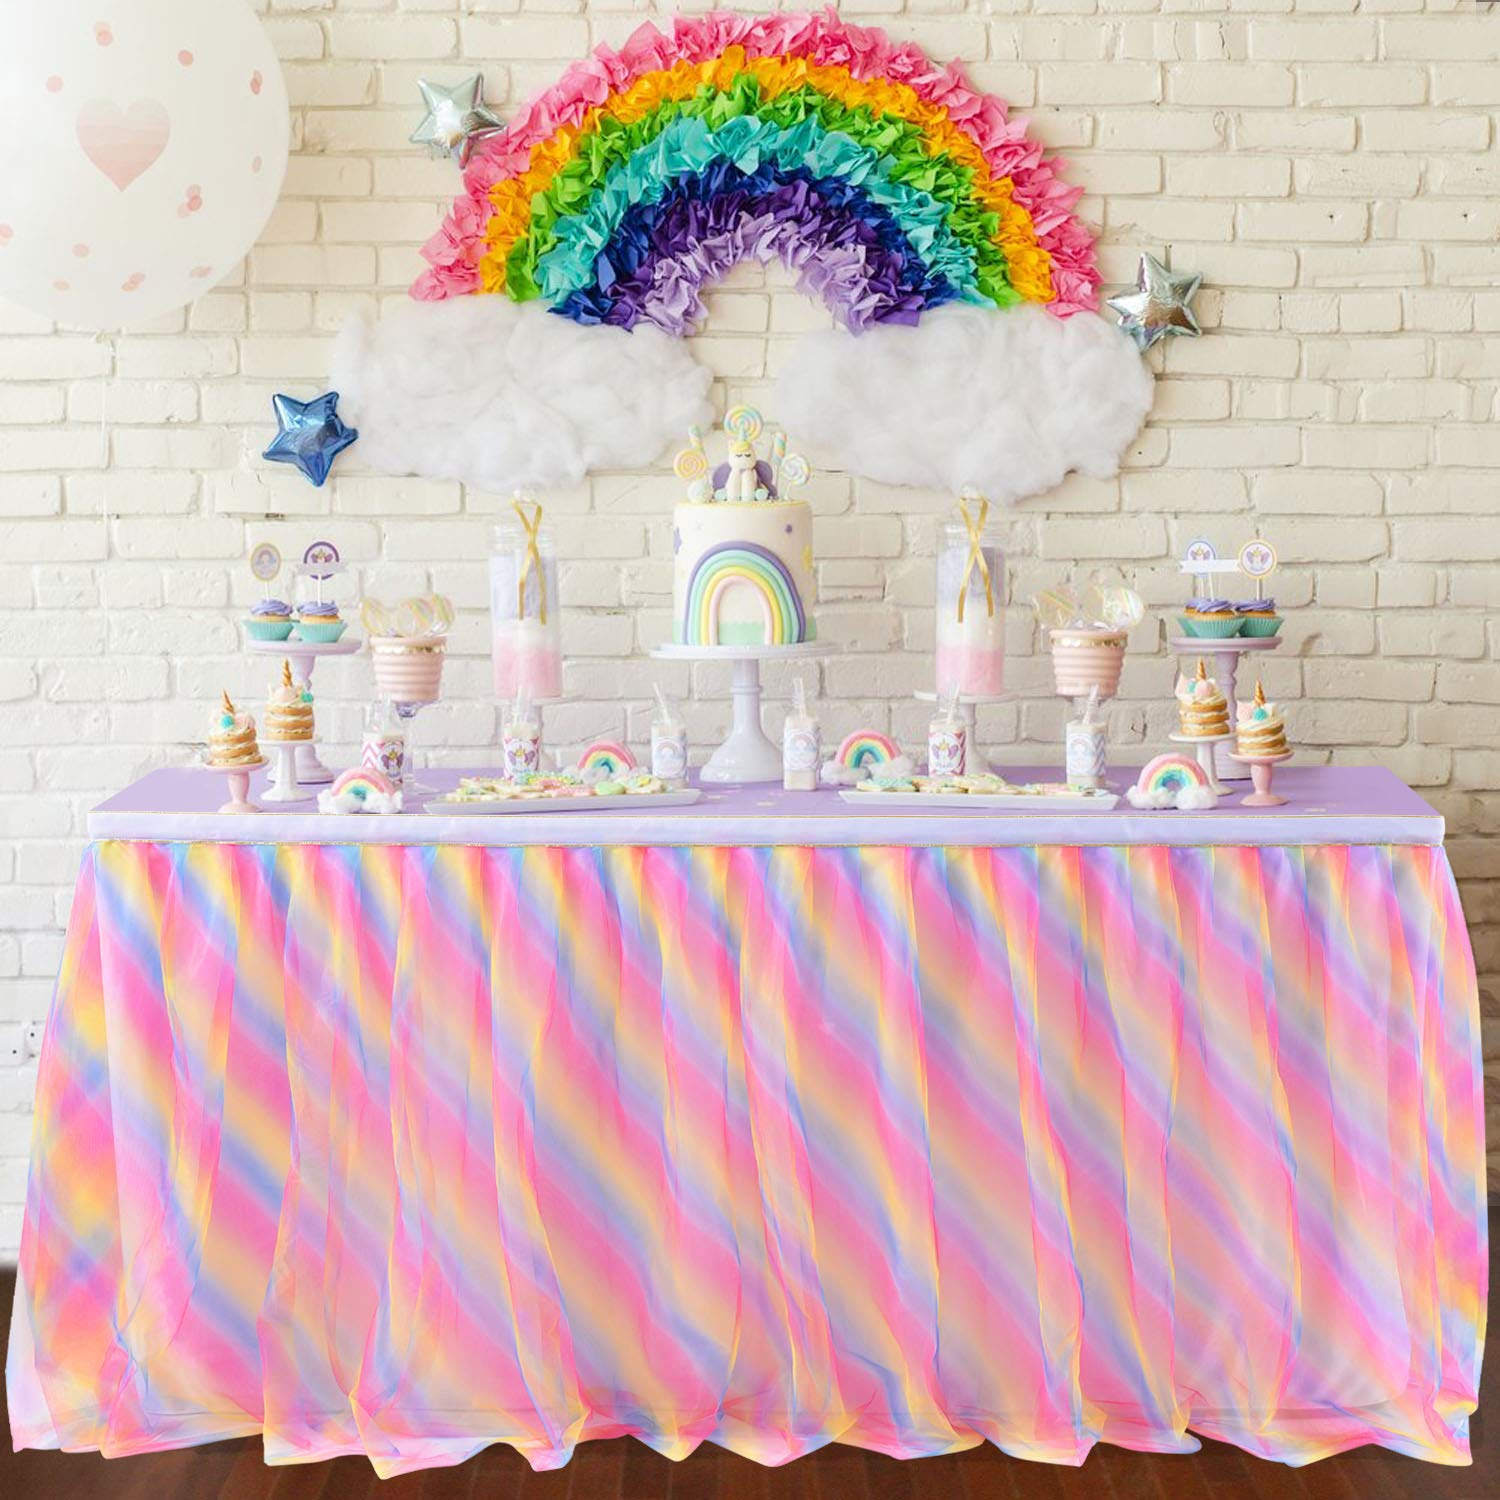 Rainbow Tulle Table Skirt Tutu Tablecloth 14ft Ruffle Table Skirting for rectangle tables Unicorn Birthday Party Baby Shower Unicorn Party Supplies by Tao-Ge